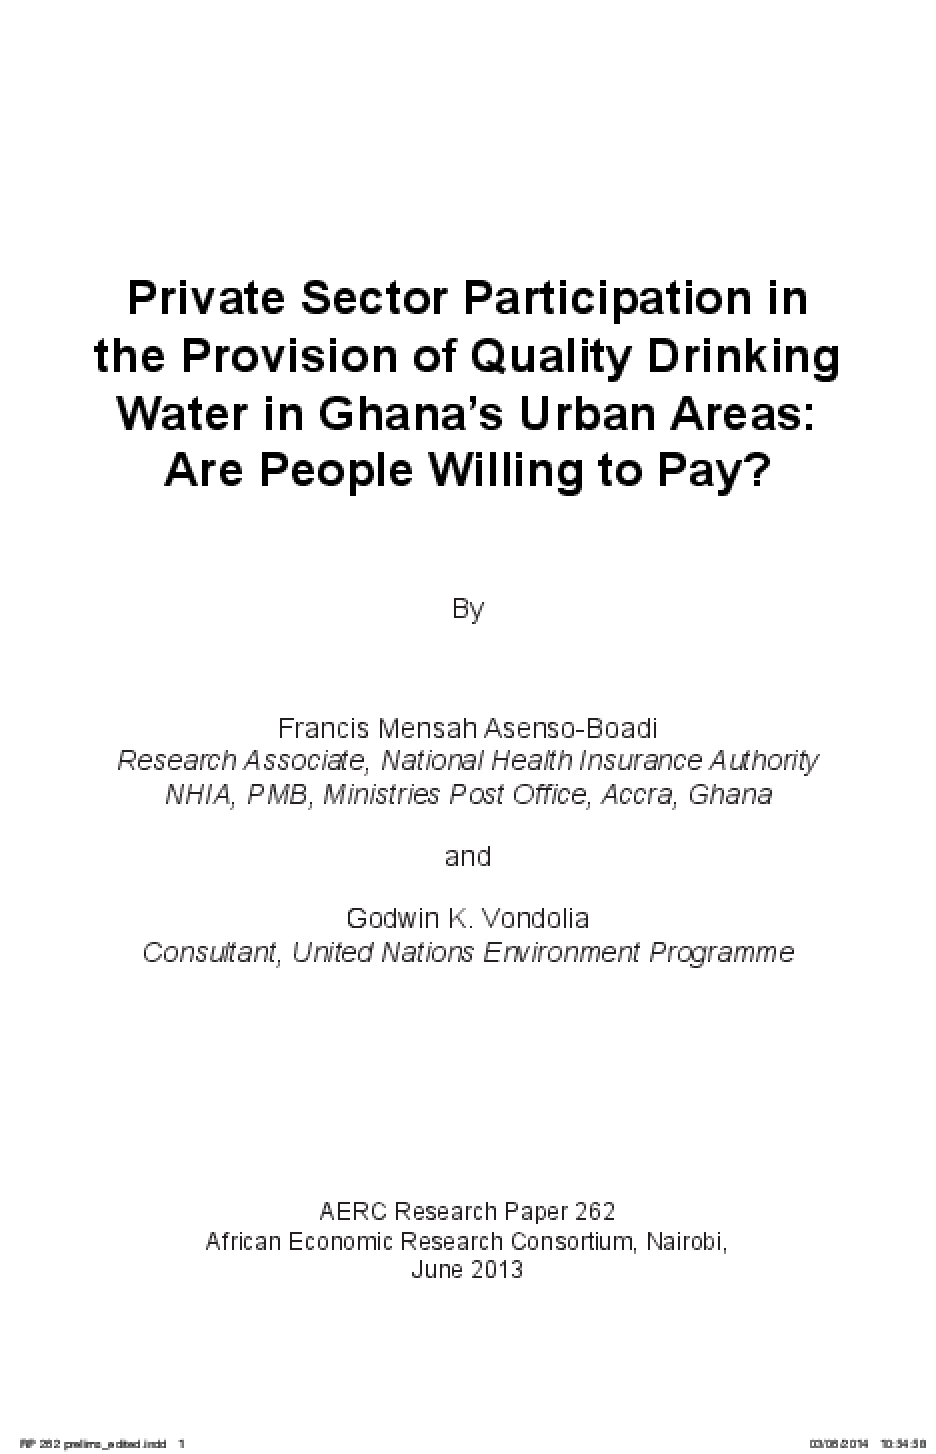 Private Sector Participation in the Provision of Quality Drinking Water in Ghana's Urban Areas: Are People Willing to Pay?